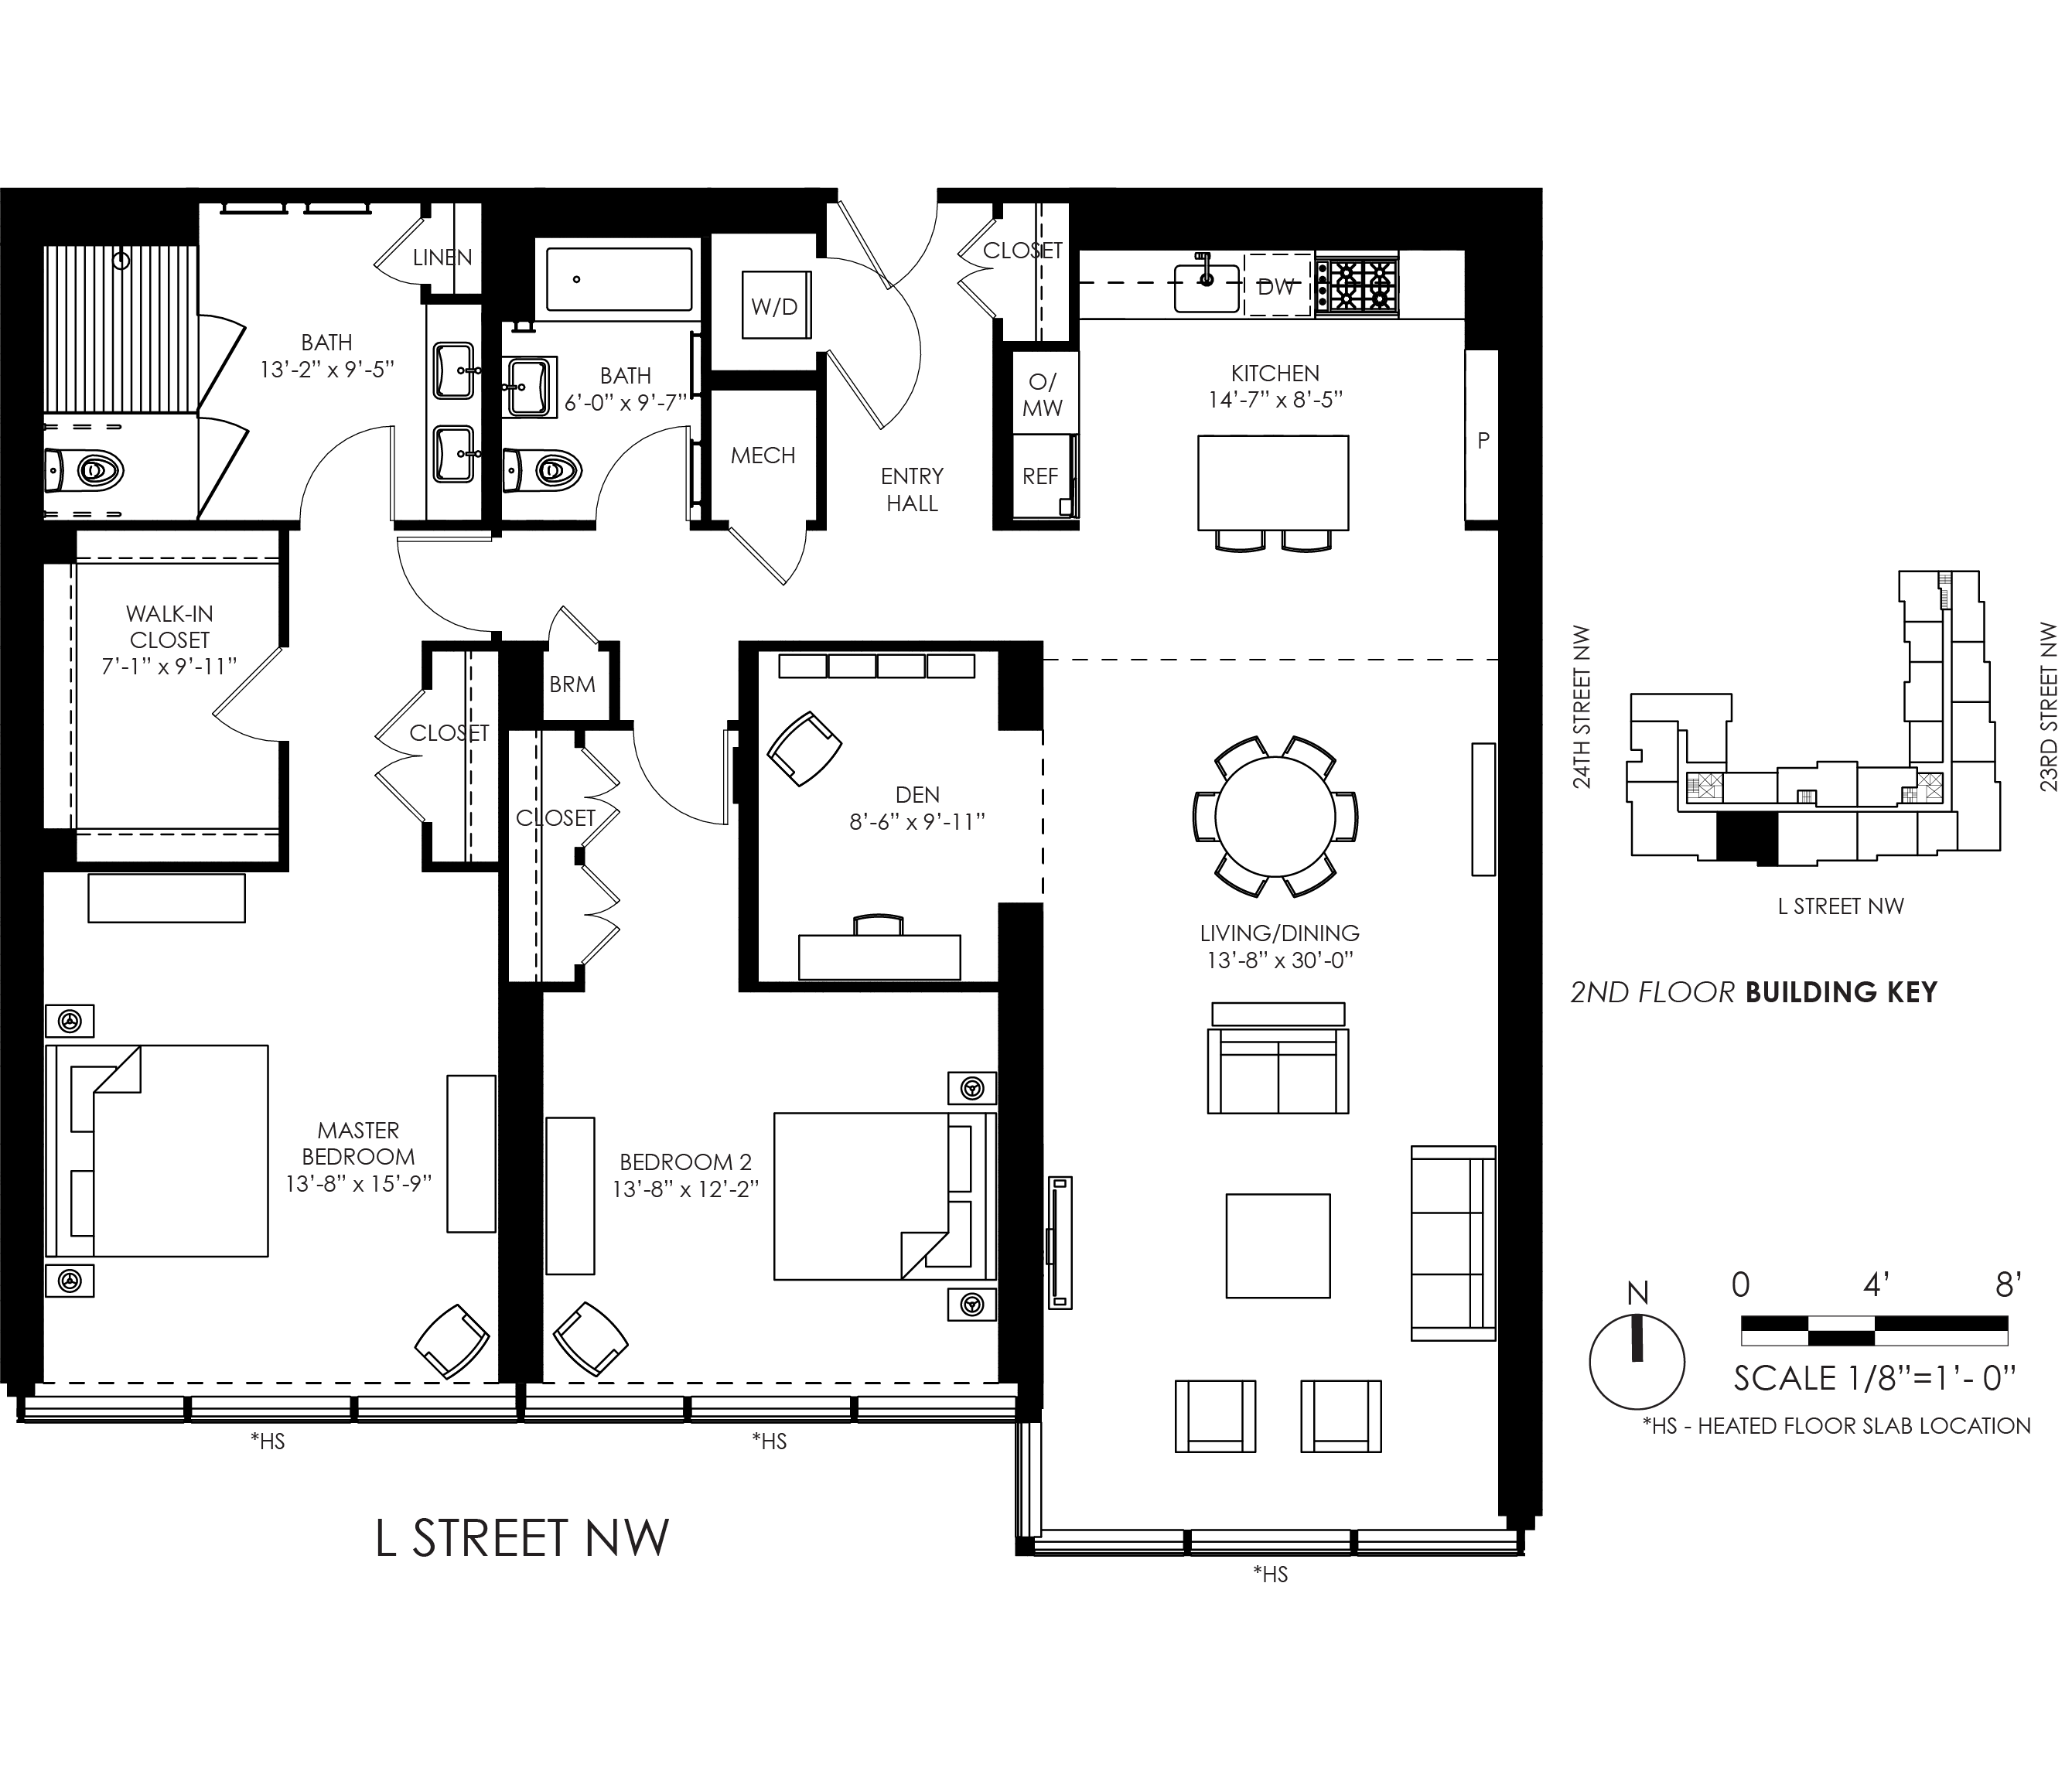 24 Unit Apartment Building Plans Westlight Unit 24 Floor Plan Floor Plans Pinterest